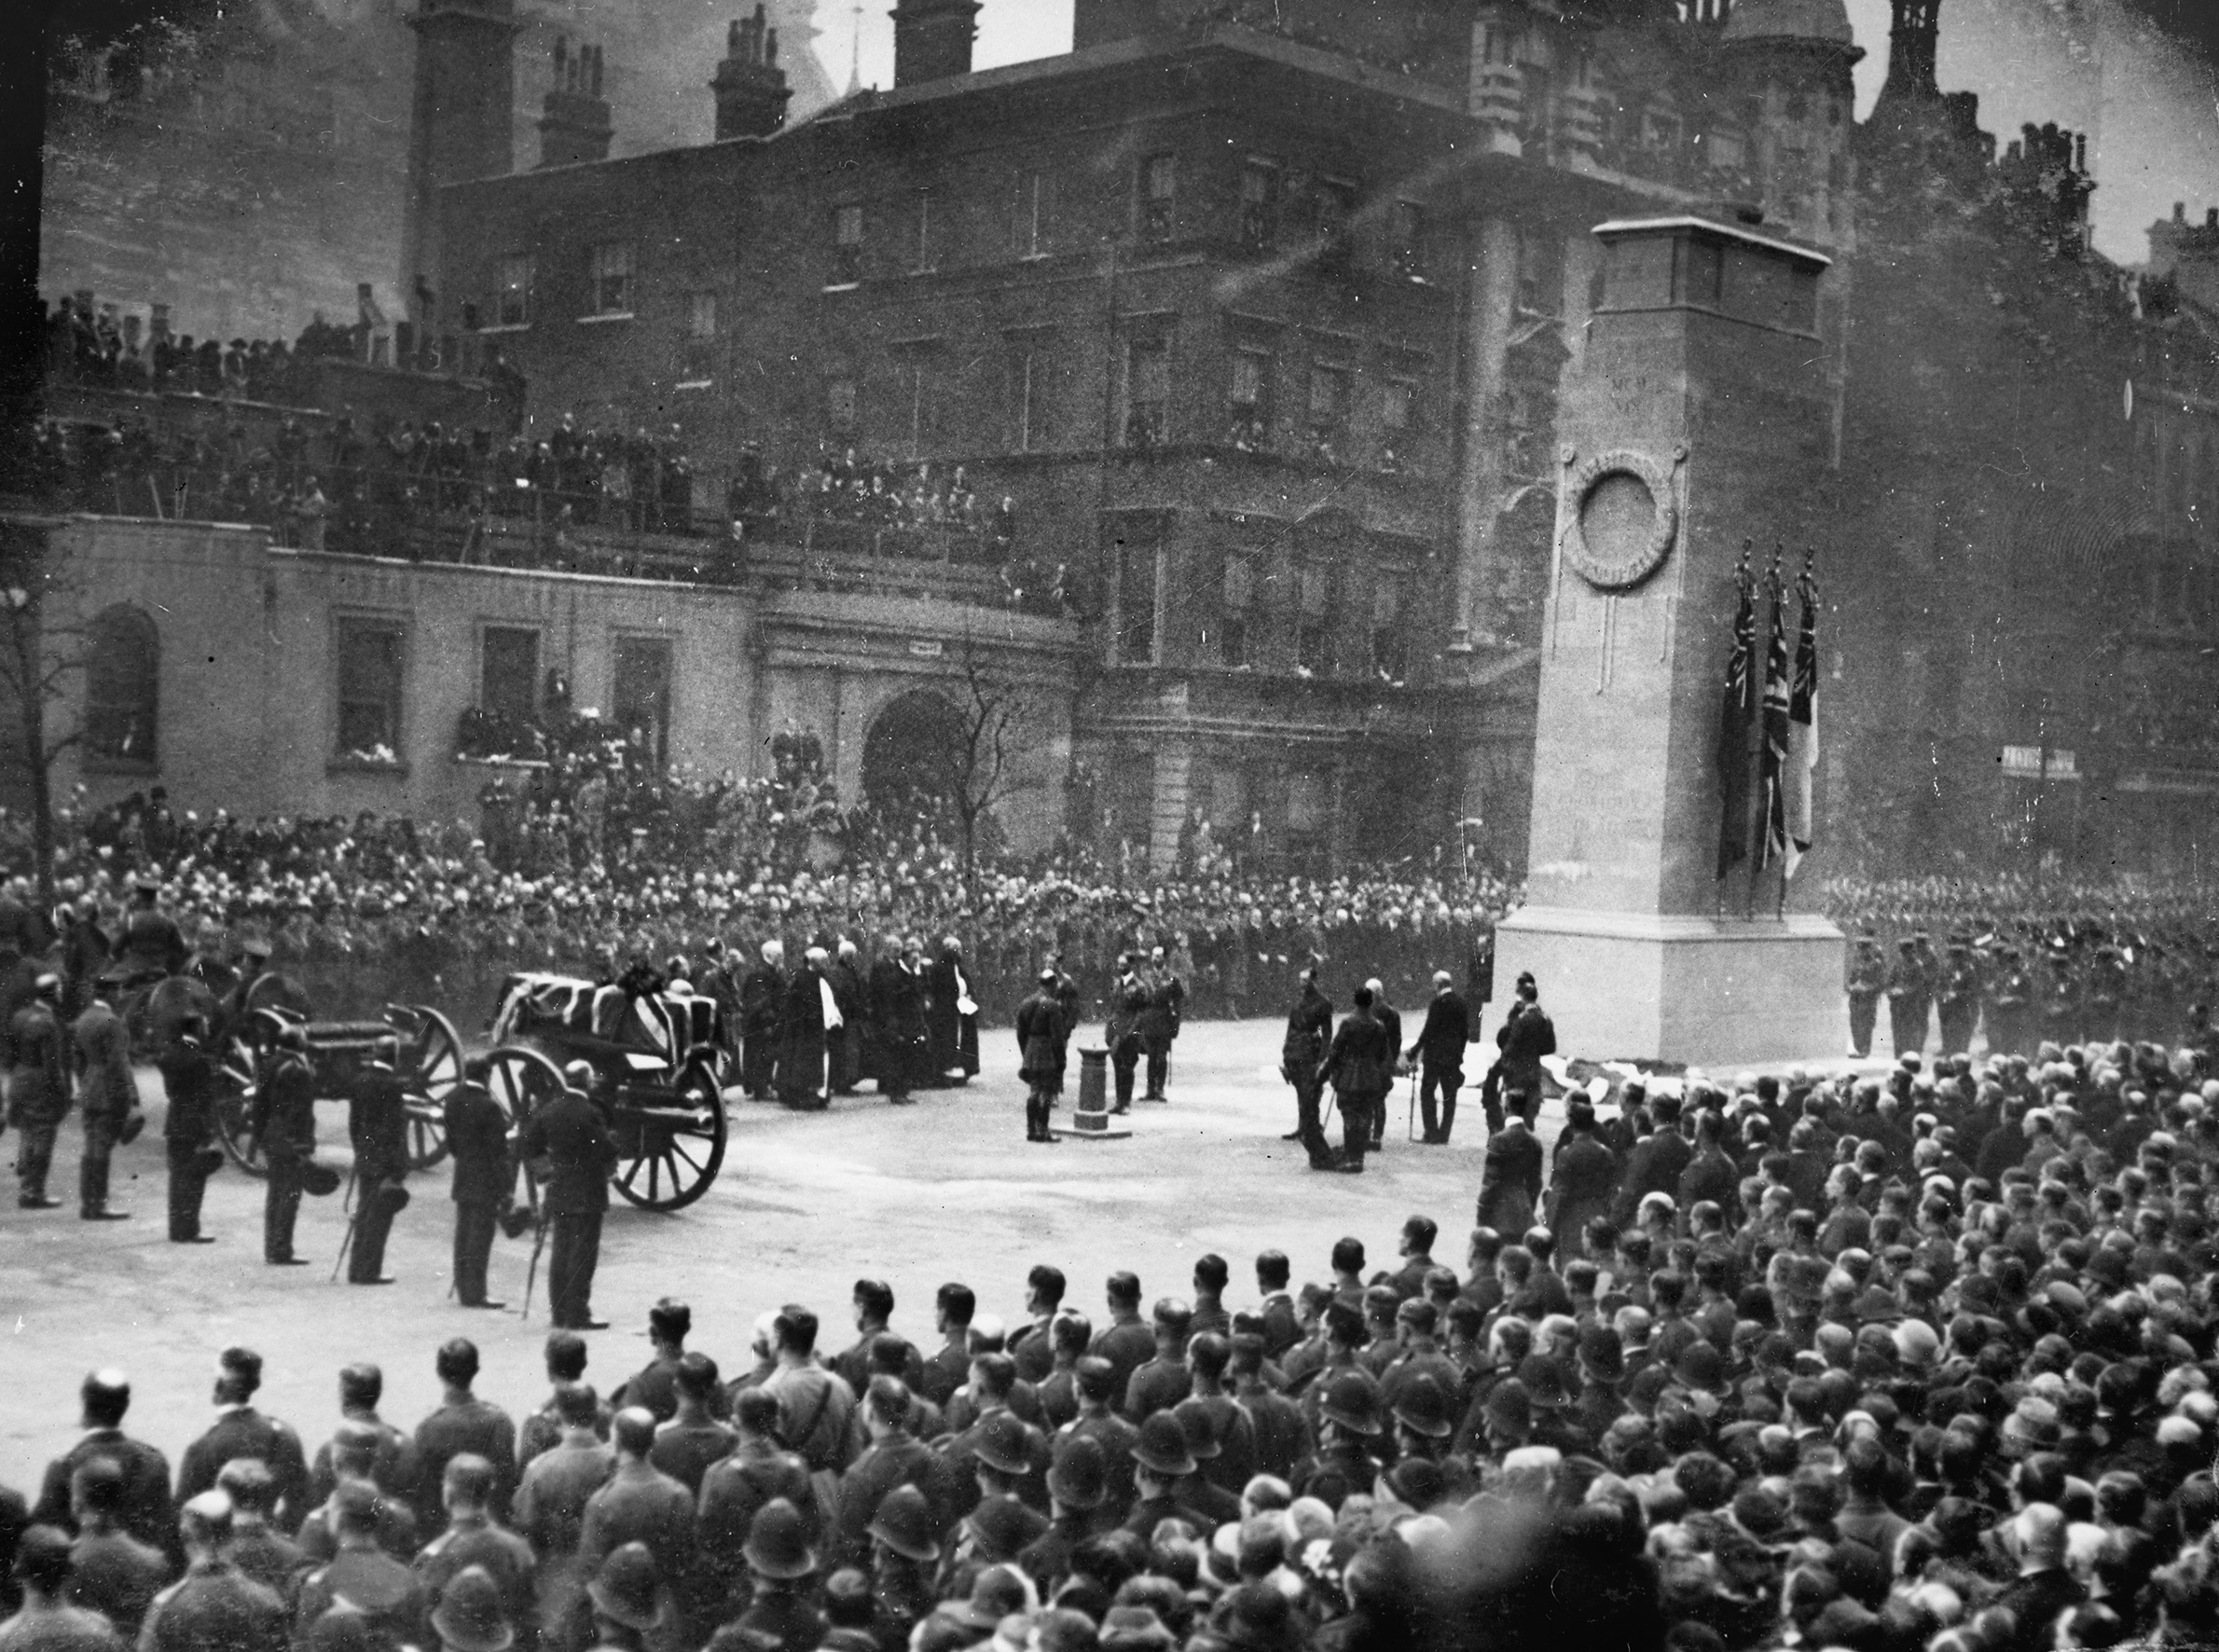 Arthur Crane, Unveiling of the Cenotaph and the Funeral of the Unknown Warrior, Armistice Day, 1920